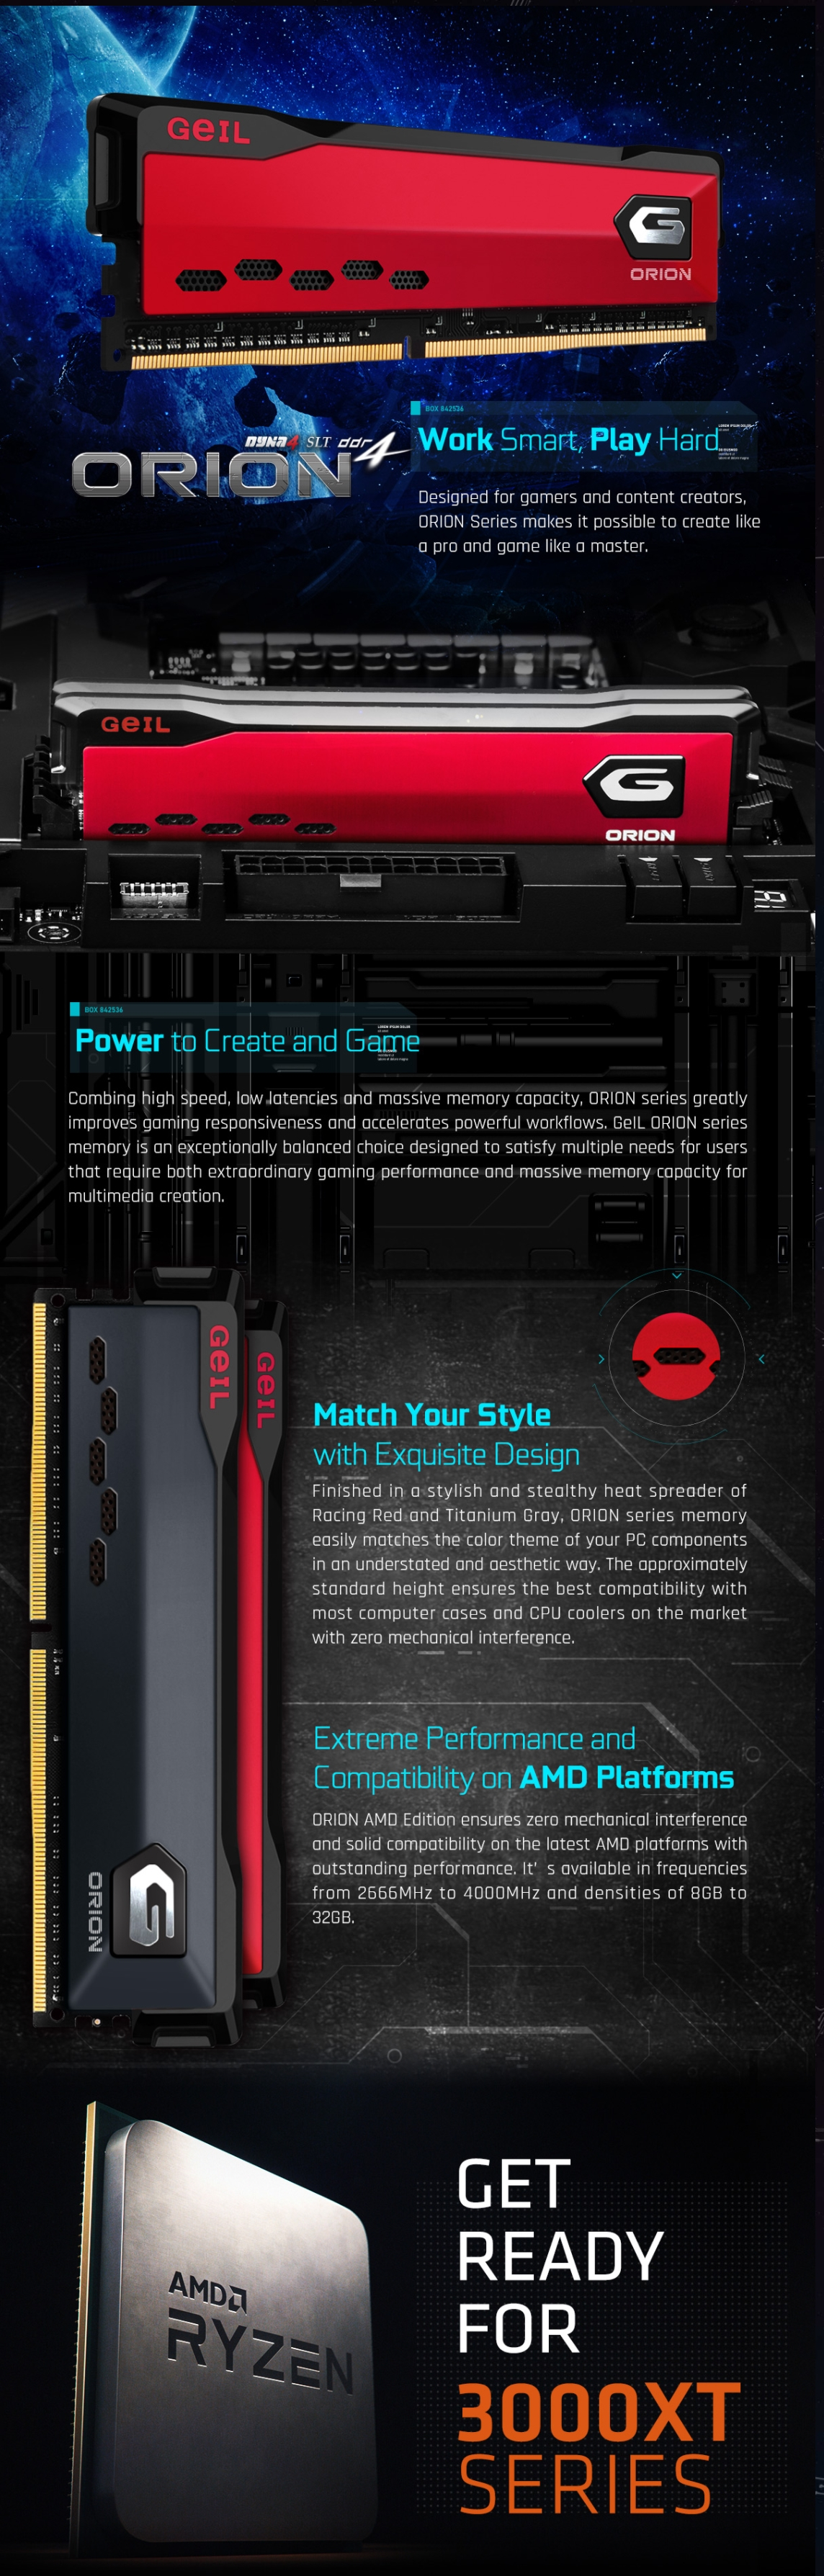 A large marketing image providing additional information about the product GeIL 16GB Kit (2x8GB) DDR4 Orion Charcoal Grey AMD Edition C16 3200MHz - Additional alt info not provided